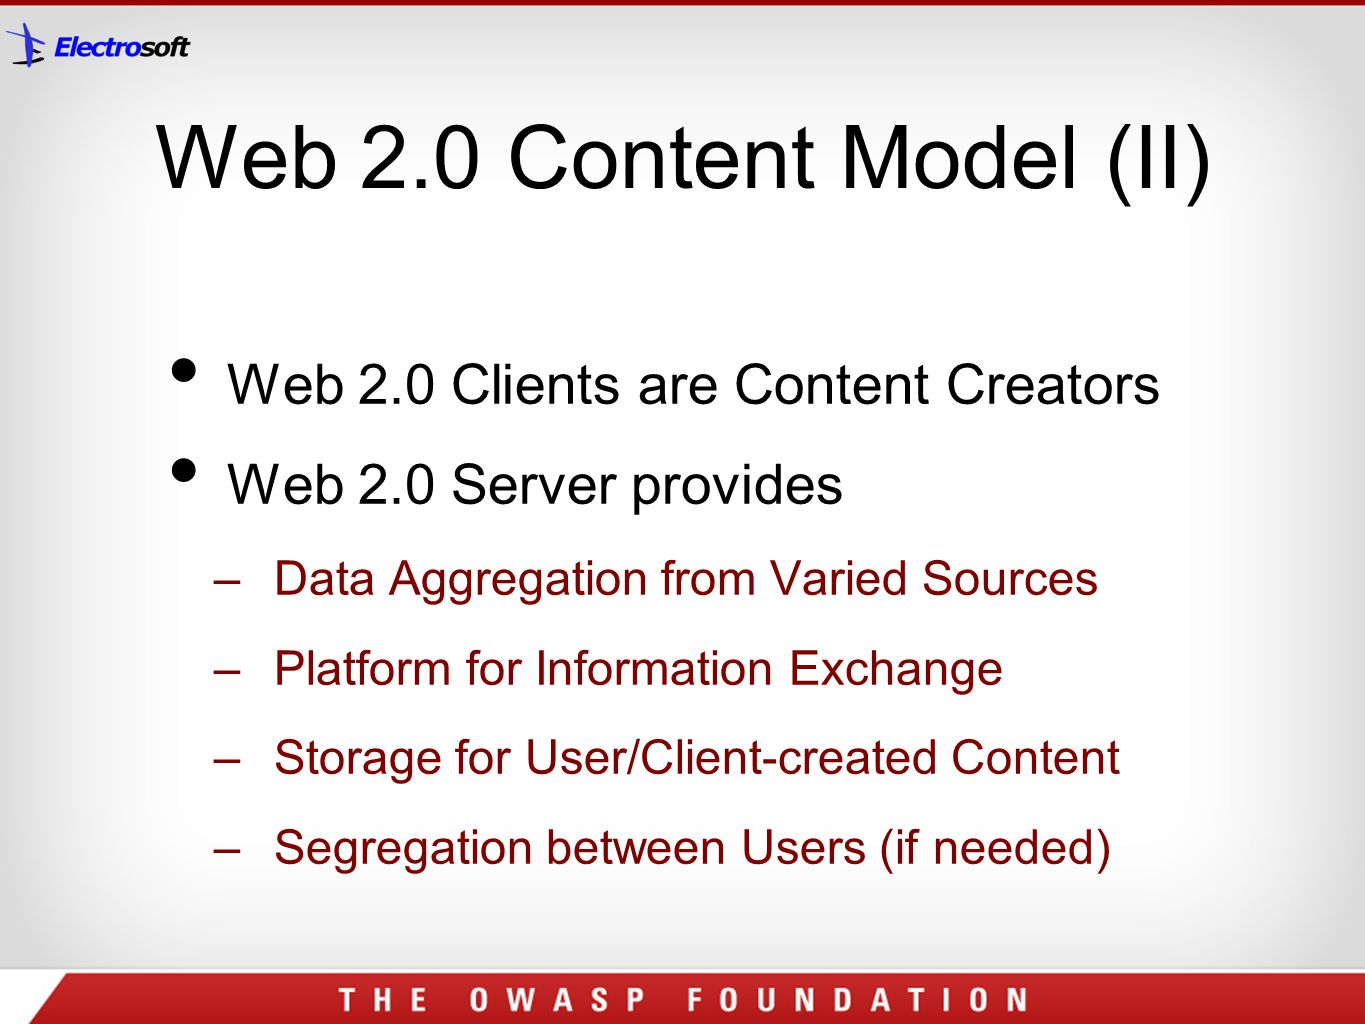 Web 2.0 Content Model (II) Web 2.0 Clients are Content Creators